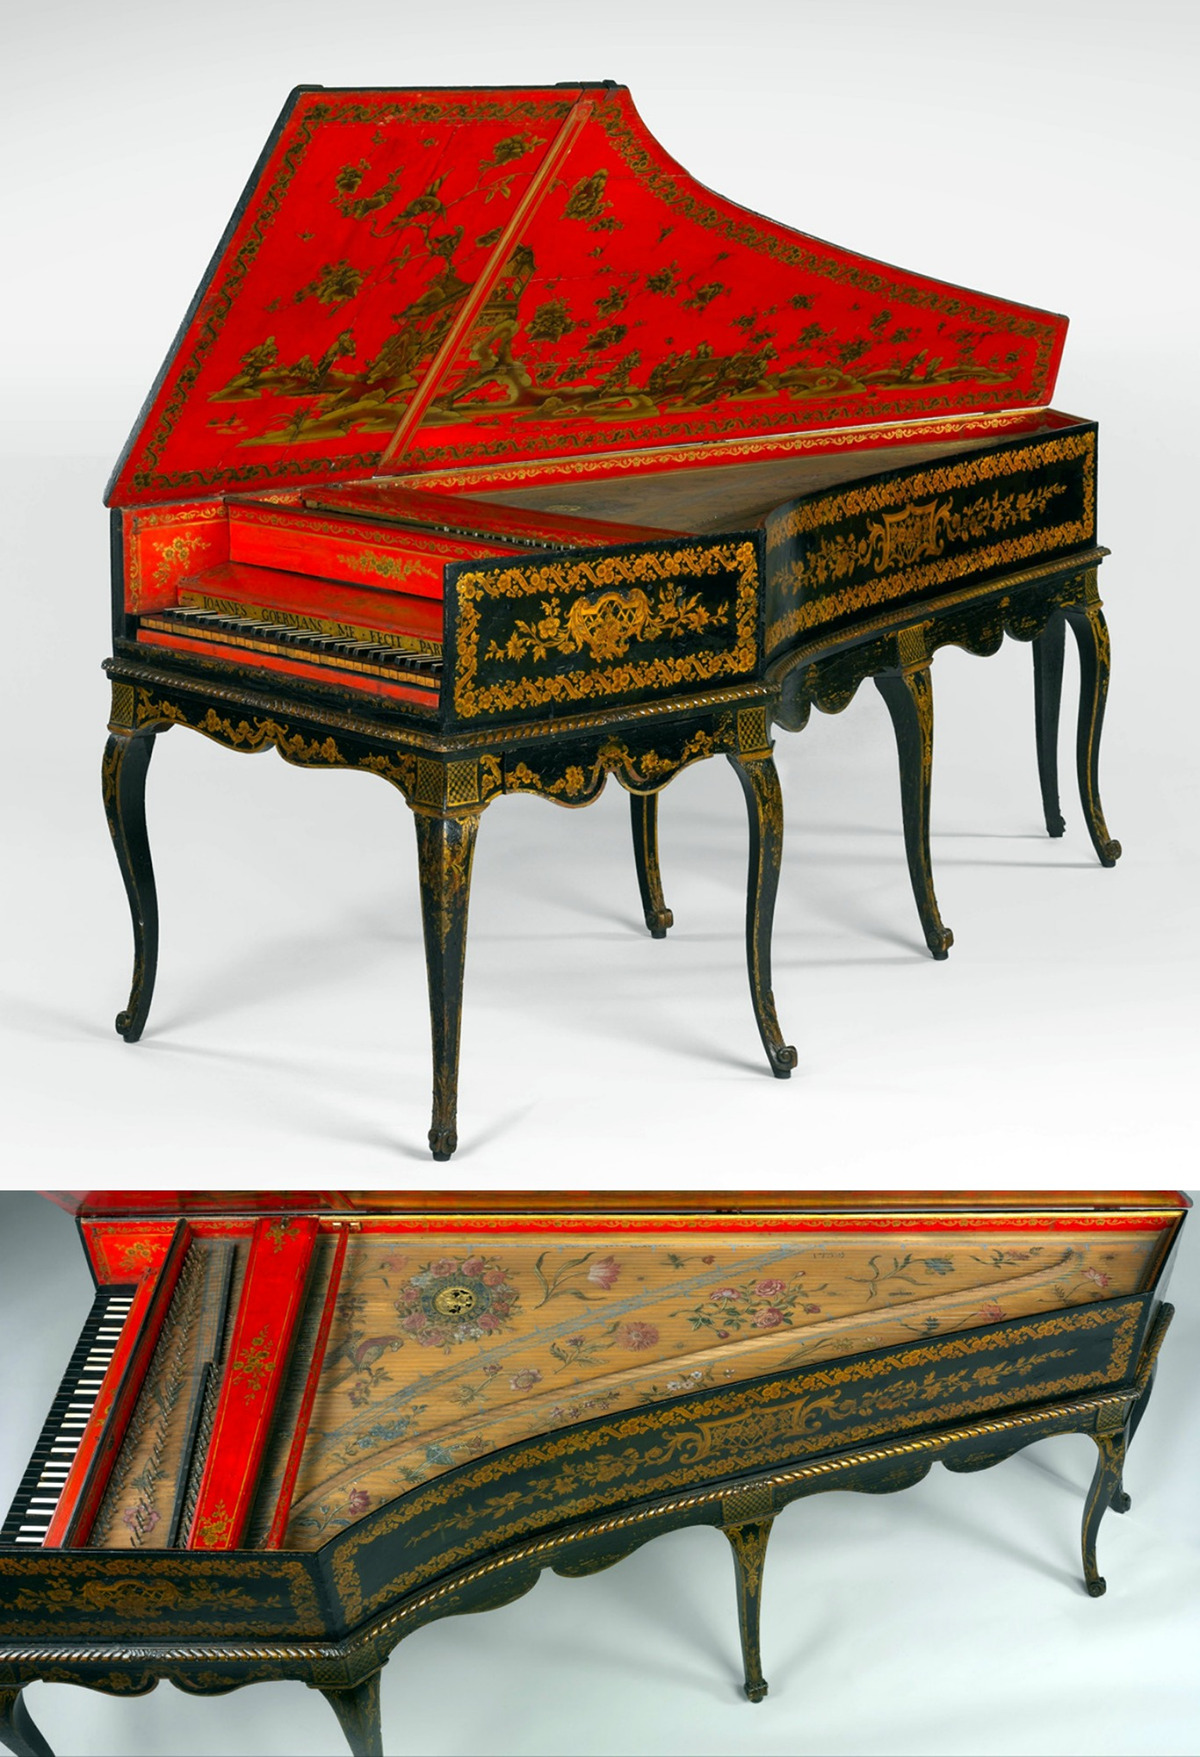 1754 Harpsichord converted to a piano. French. Wood, paint, gilding, polychrome, gilded pewter, ebony, bone, felt. metmuseum